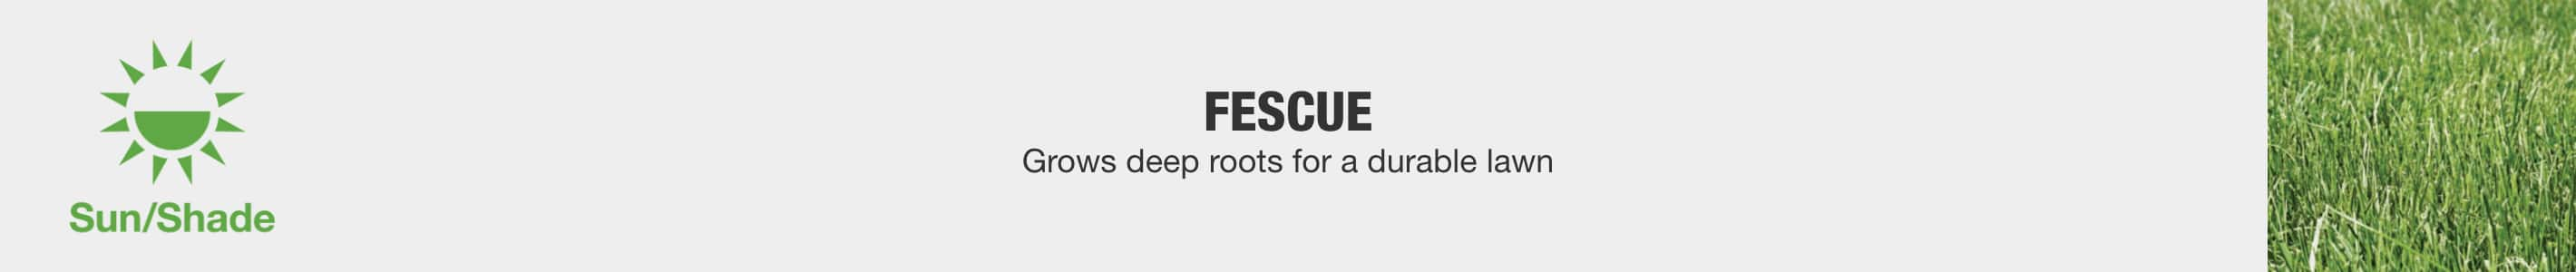 Fescue - Grows deep roots for a durable lawn